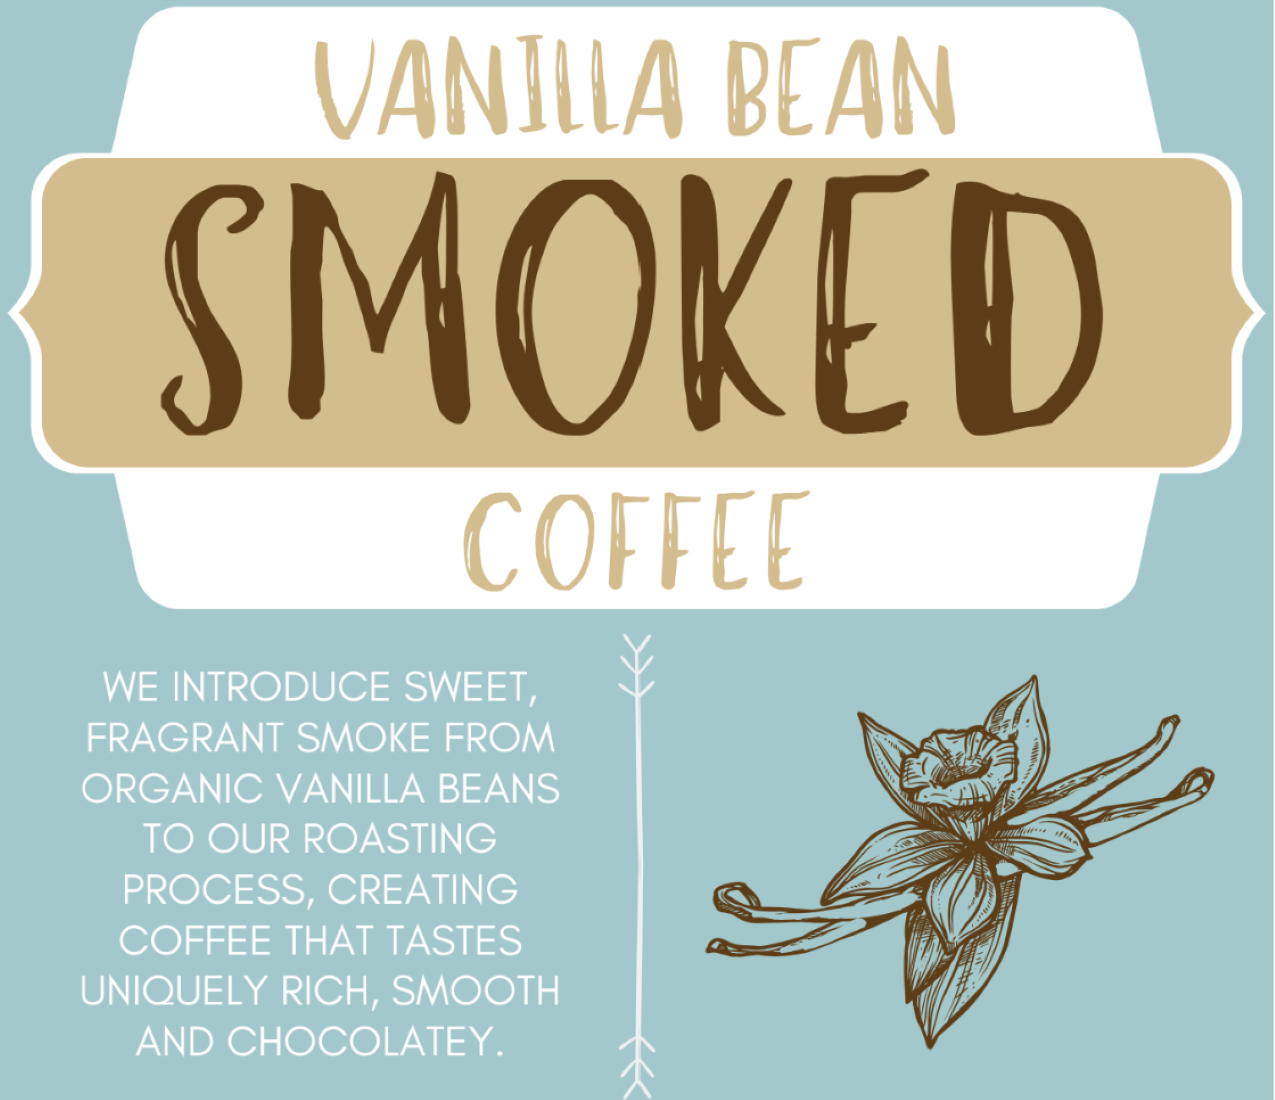 Henry Fundraiser - Vanilla Bean Smoked Coffee